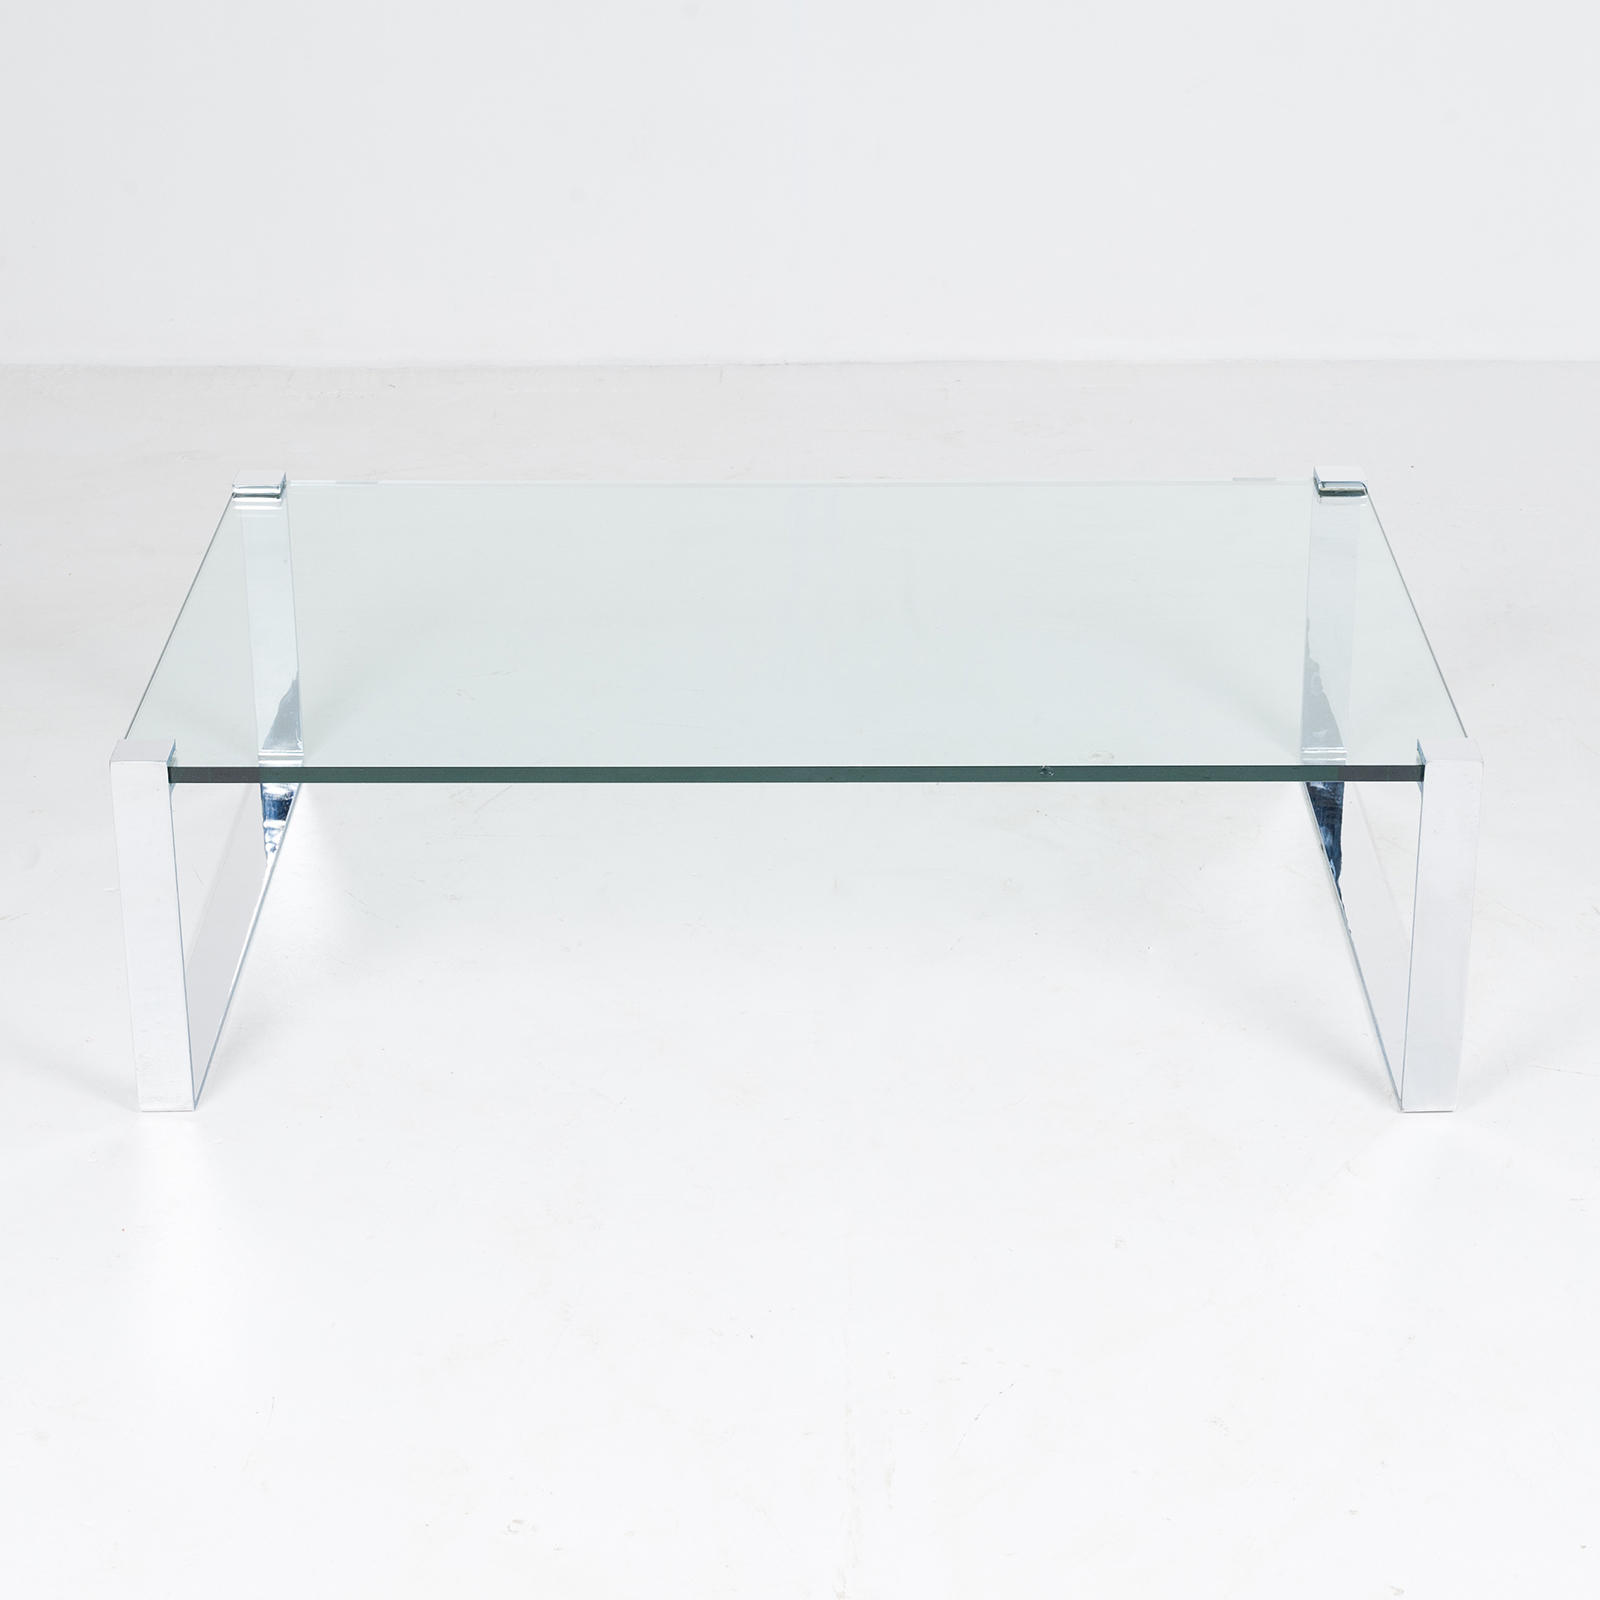 Model K 831 Rectangular Coffee Table With Glass And Polished Chrome By Friedrich Wilhelm Moller For Ronald Schmitt, 1970s, Germany 88